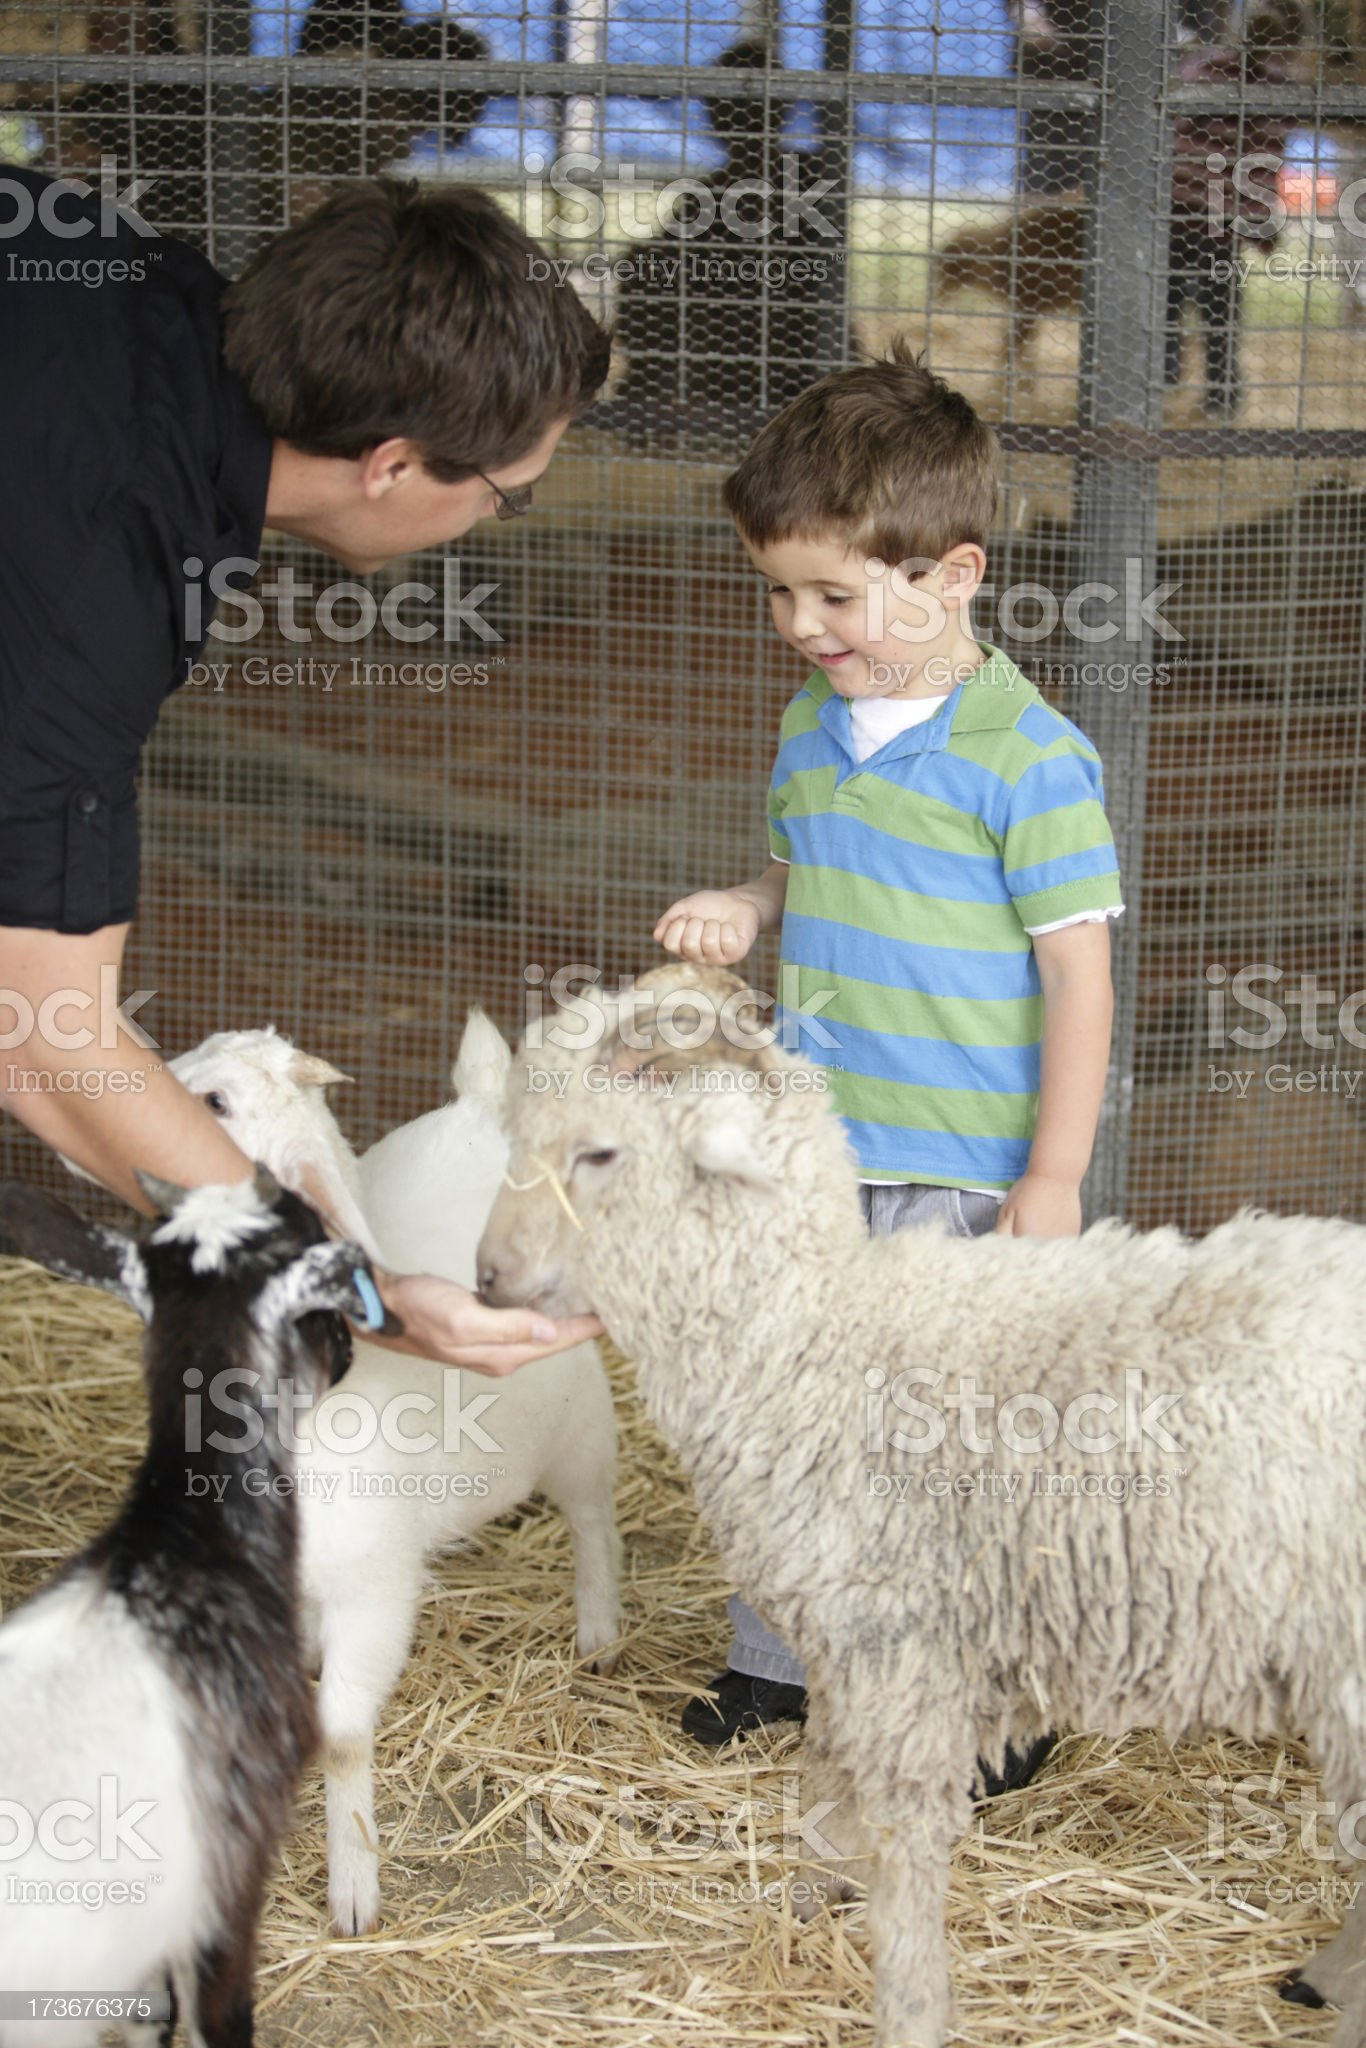 Goat Feeding royalty-free stock photo